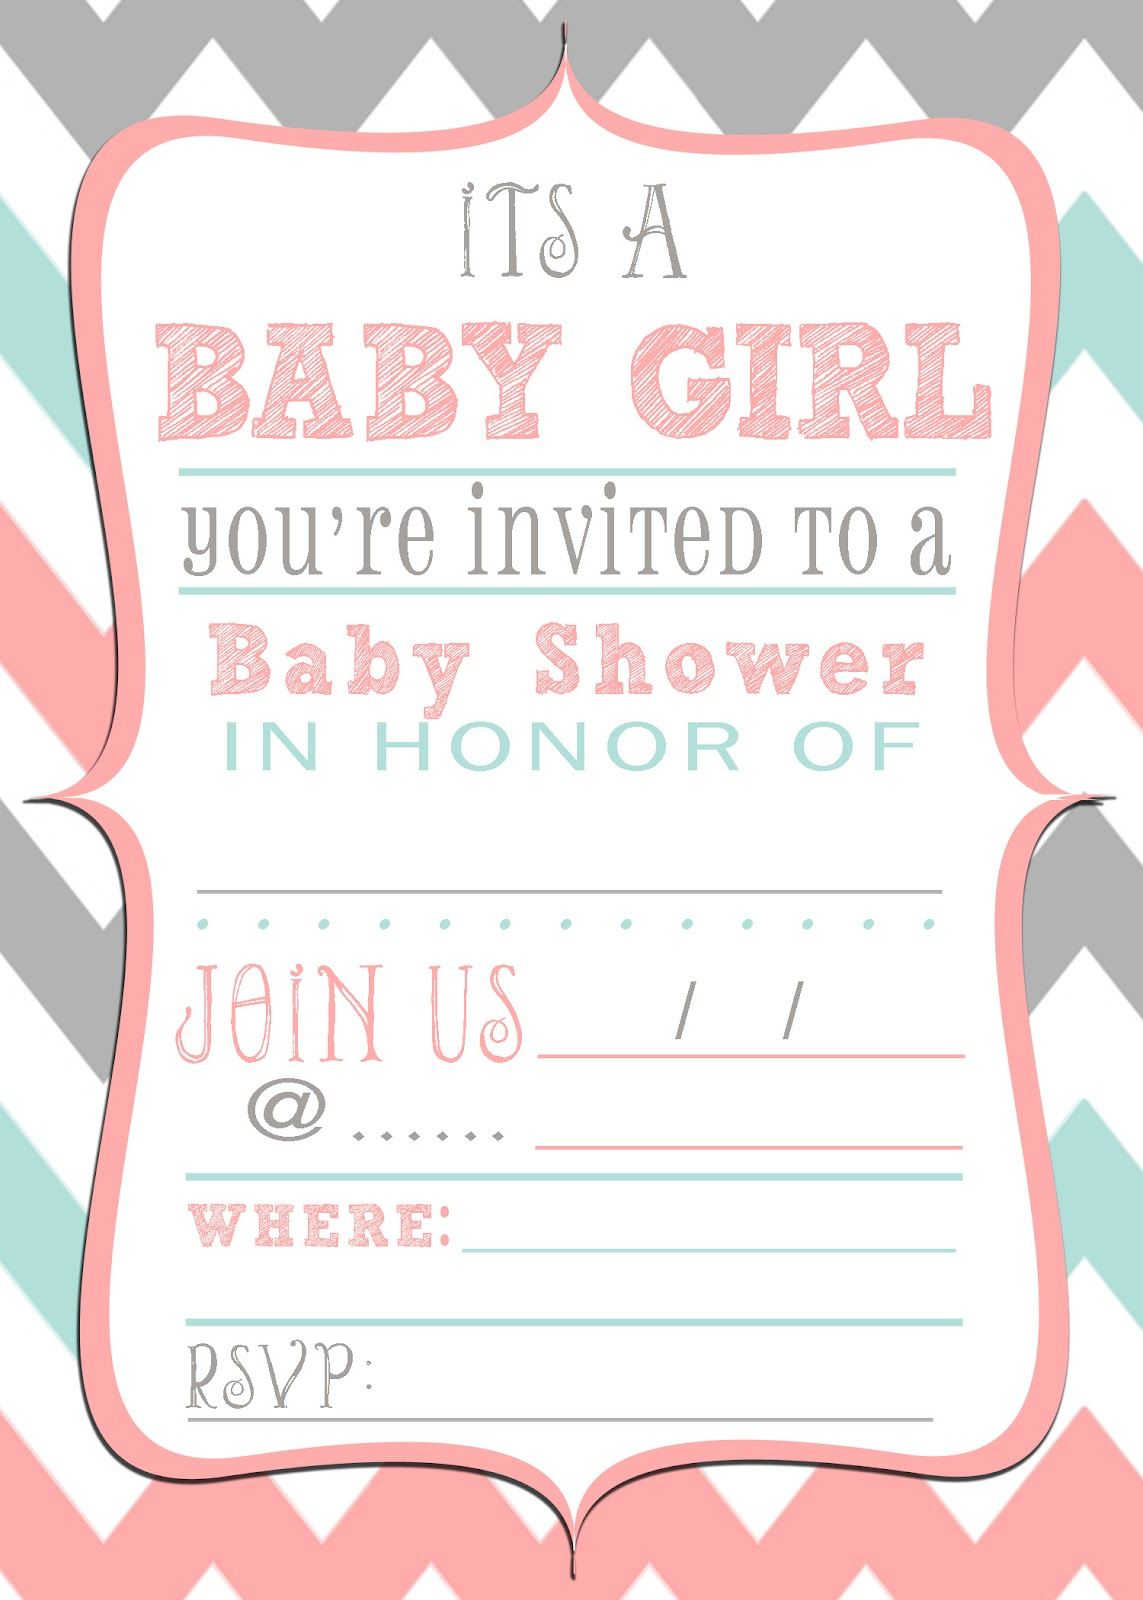 best ideas about baby shower invites a tree 16 best ideas about baby shower invites a tree baby shower chalkboard and baby showers